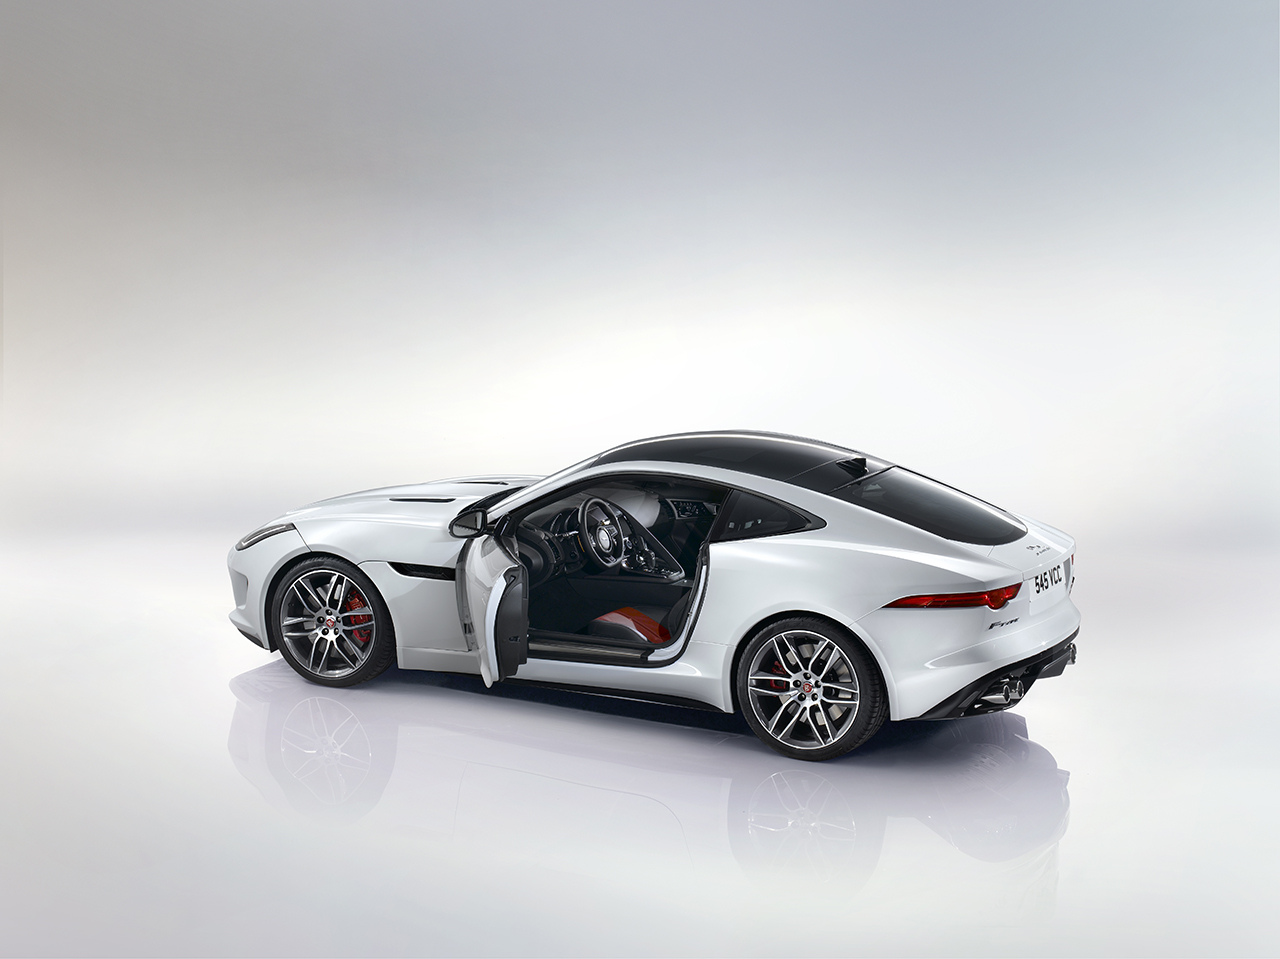 2014 jaguar f type coupe 30 egmcartech egmcartech2014 jaguar f. Cars Review. Best American Auto & Cars Review